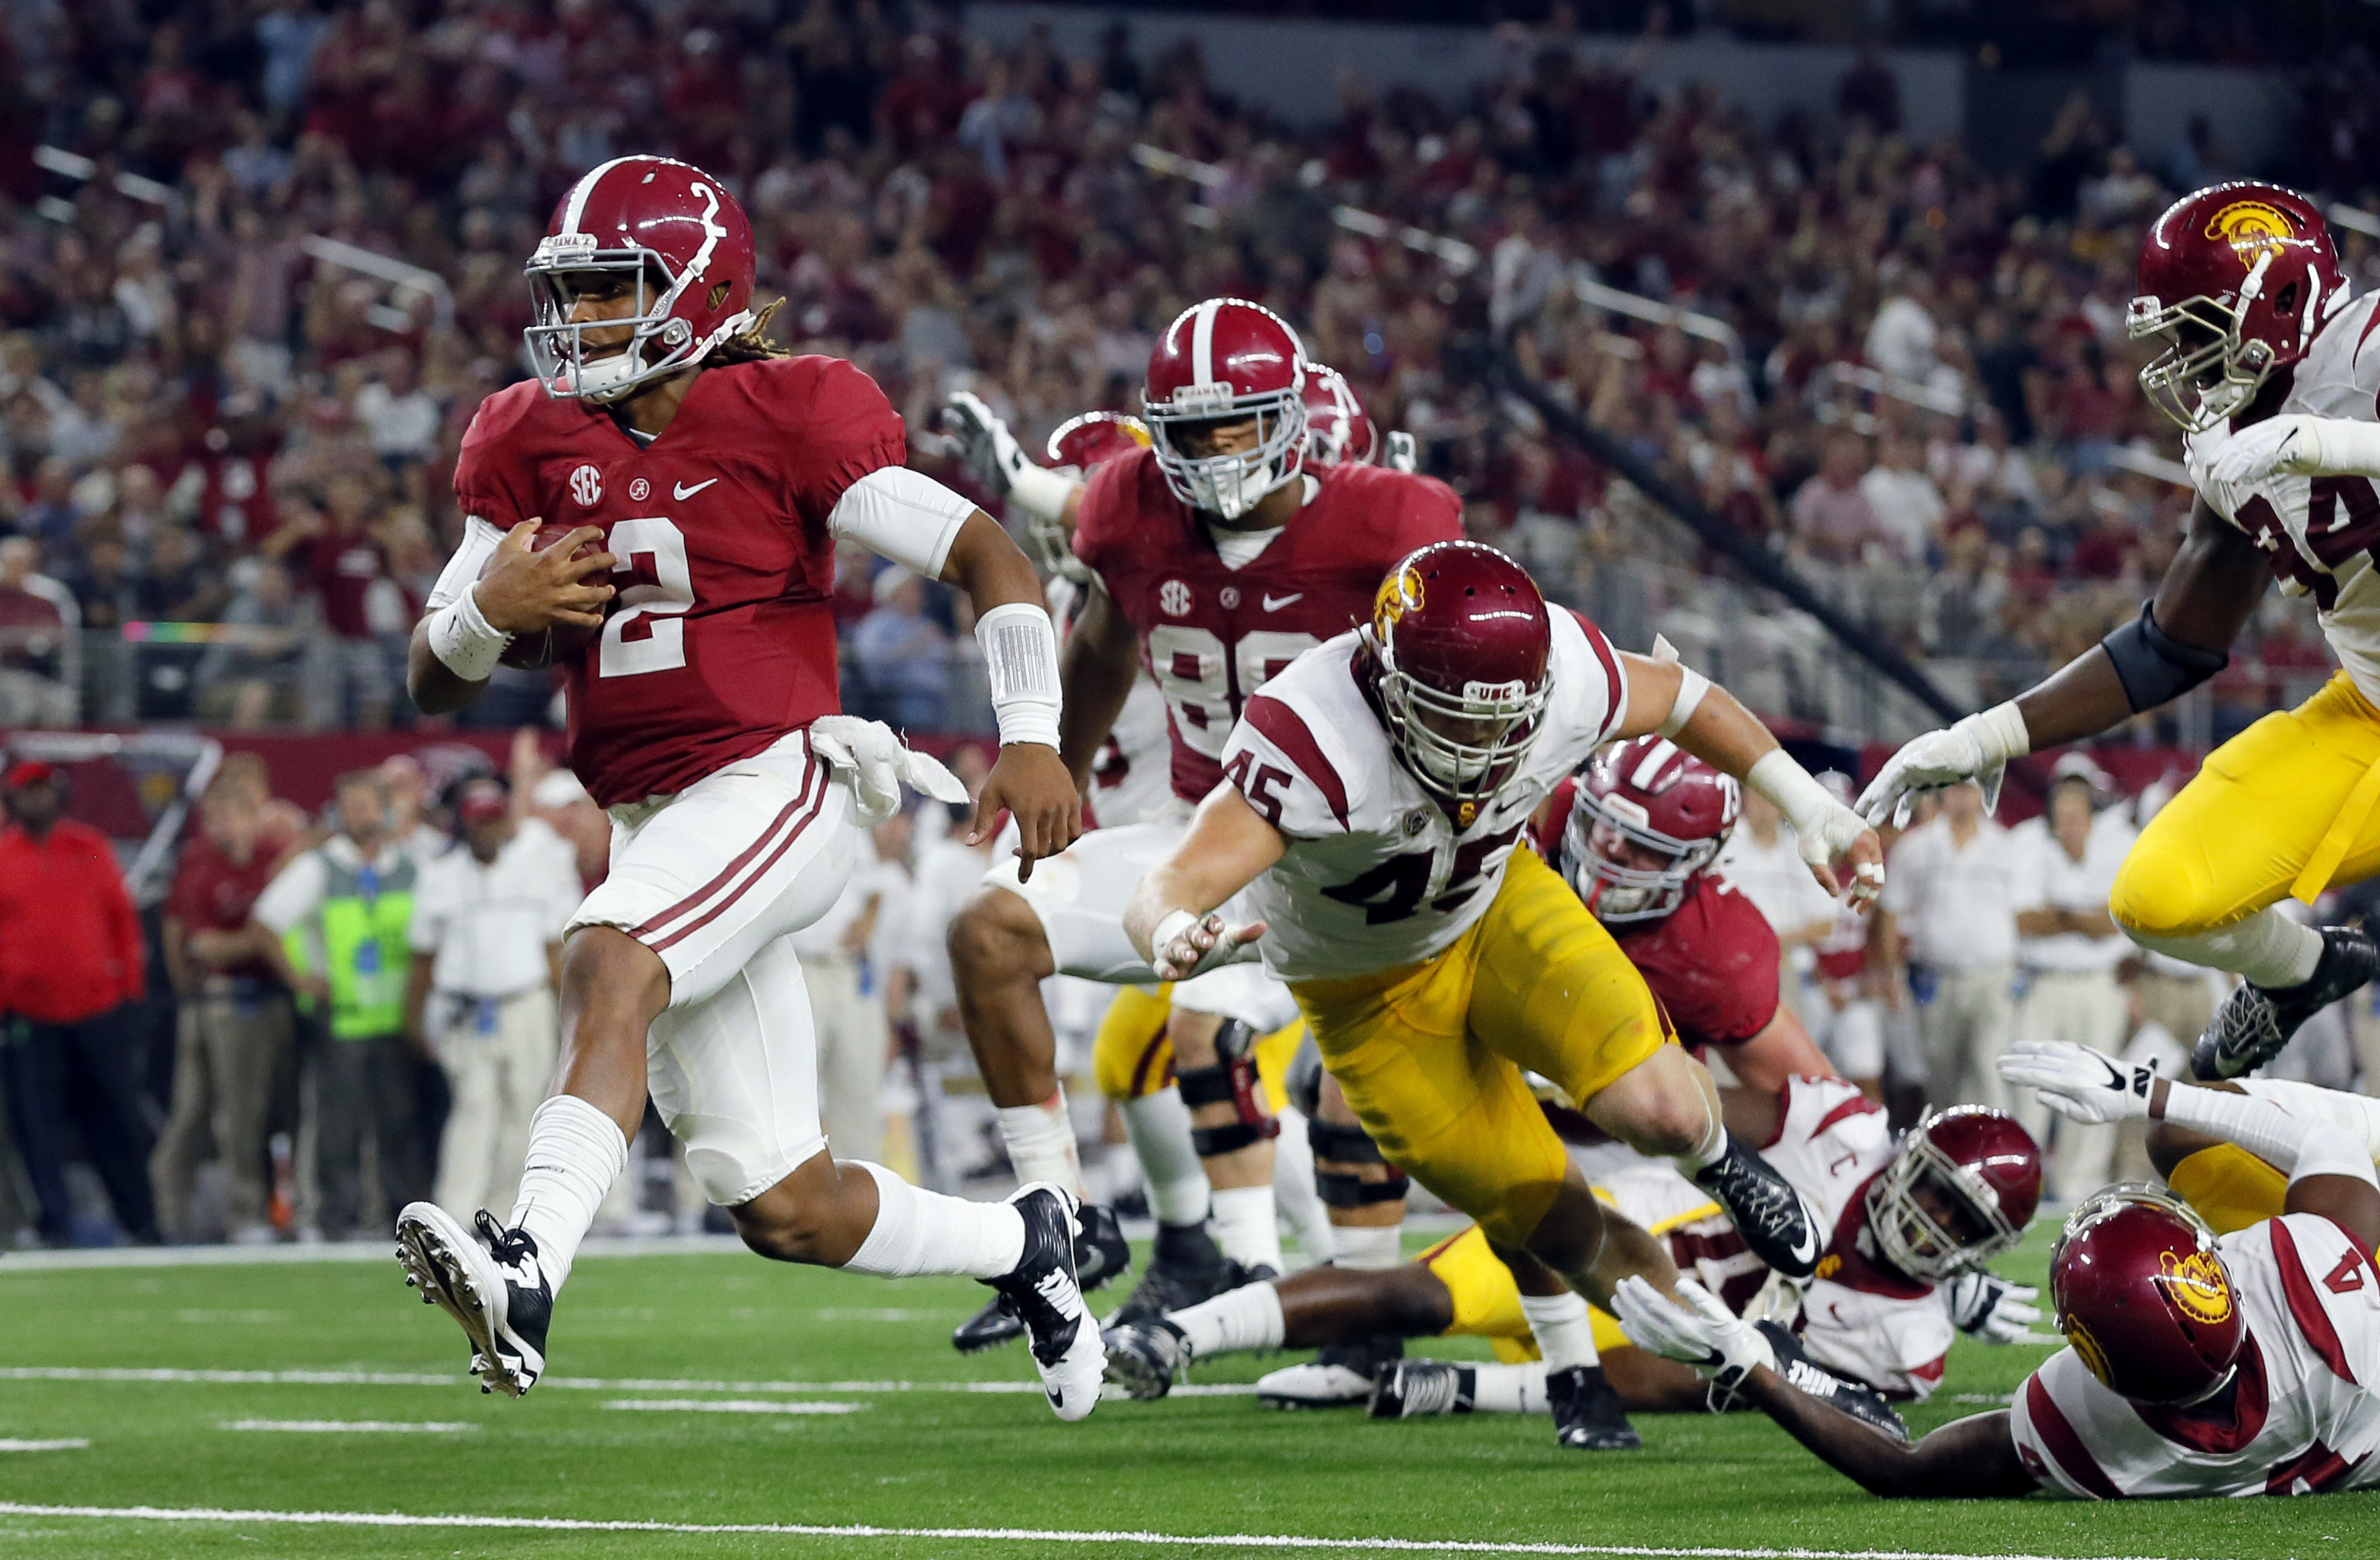 FILE - In this Sept. 3, 2016, file photo, Alabama quarterback Jalen Hurts slips into the end zone on a 7-yard touchdown run during the second half of an NCAA college football game against Southern California, in Arlington, Texas. Freshman Jalen Hurts was